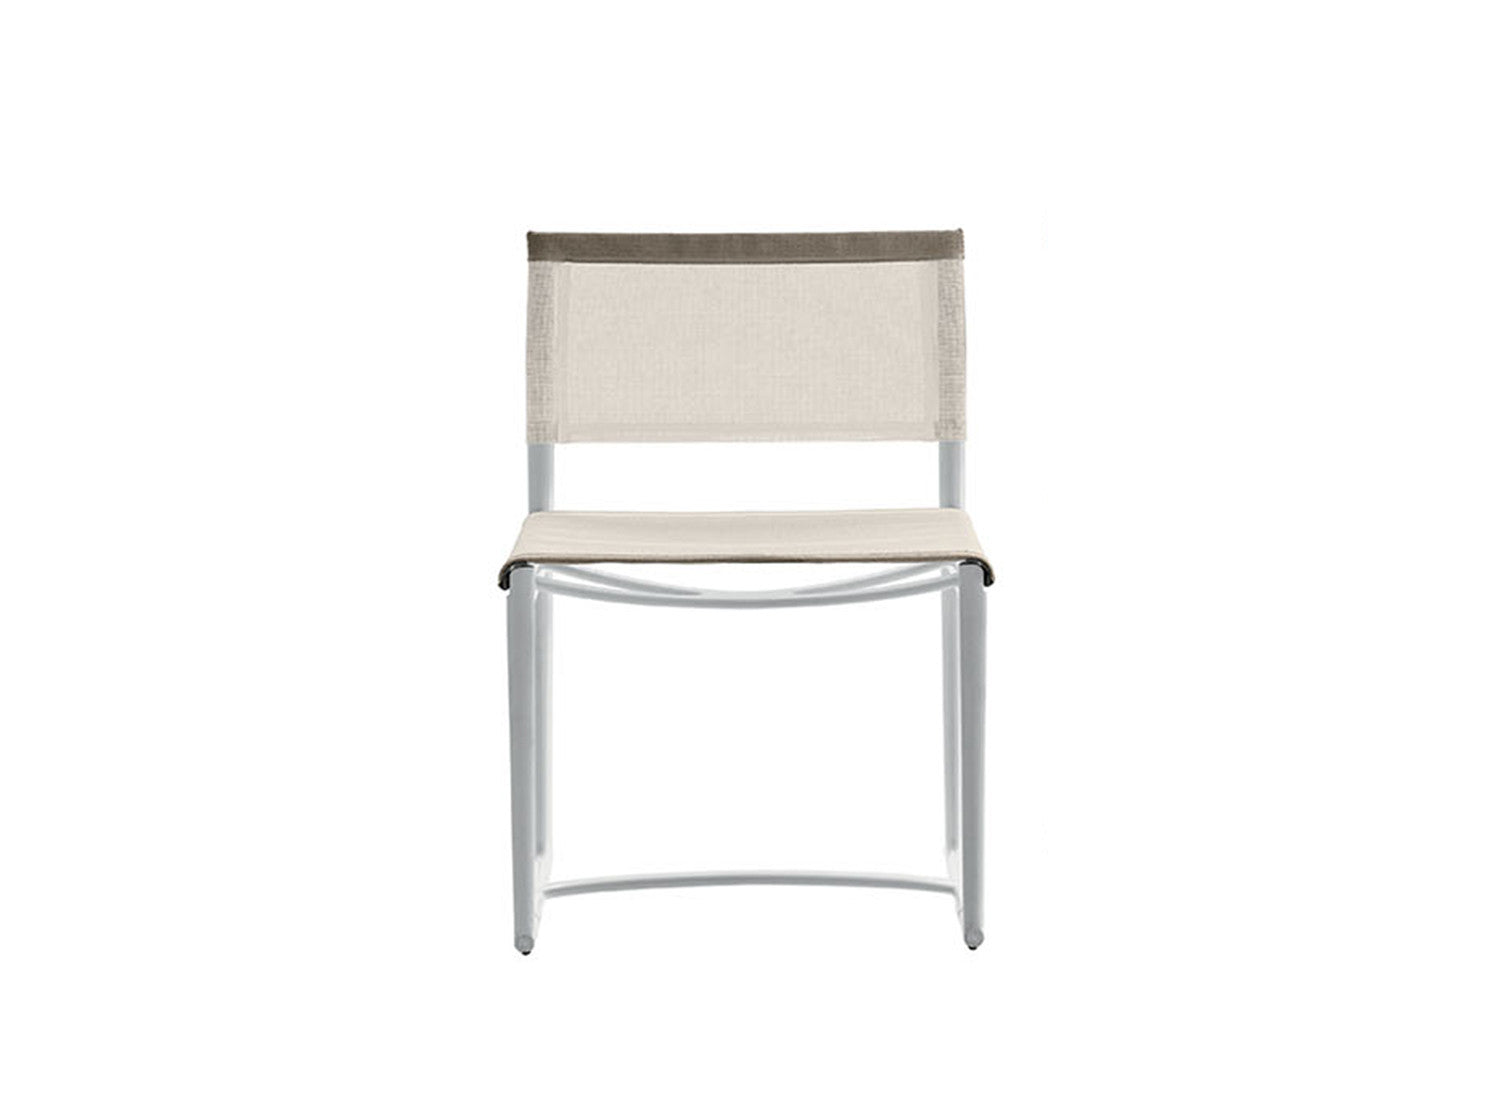 Mirto Outdoor Chair